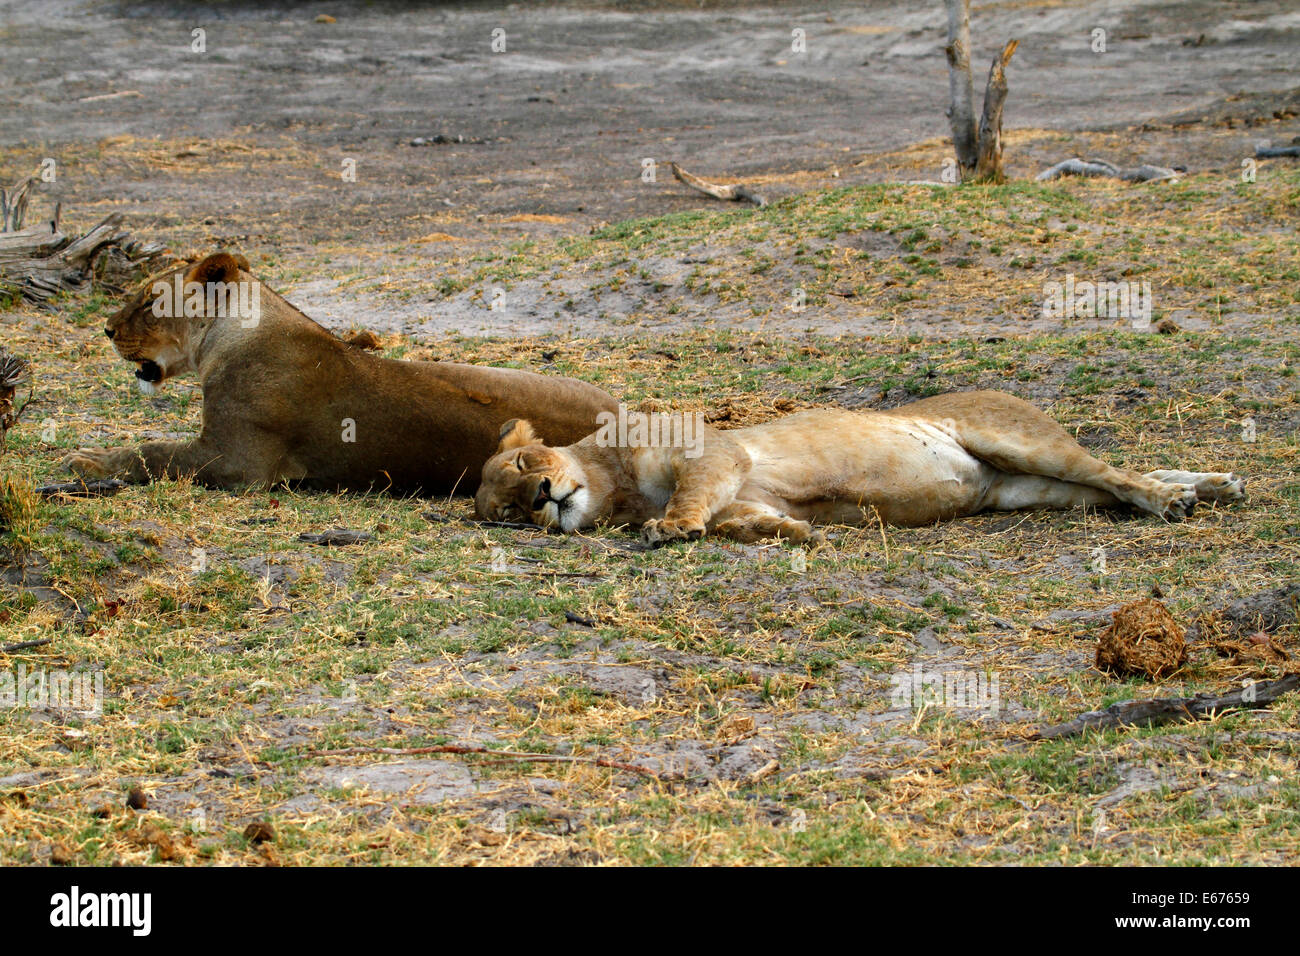 A pride of lions in Botswana, South Africa lazing about as lions do during daylight hours Stock Photo